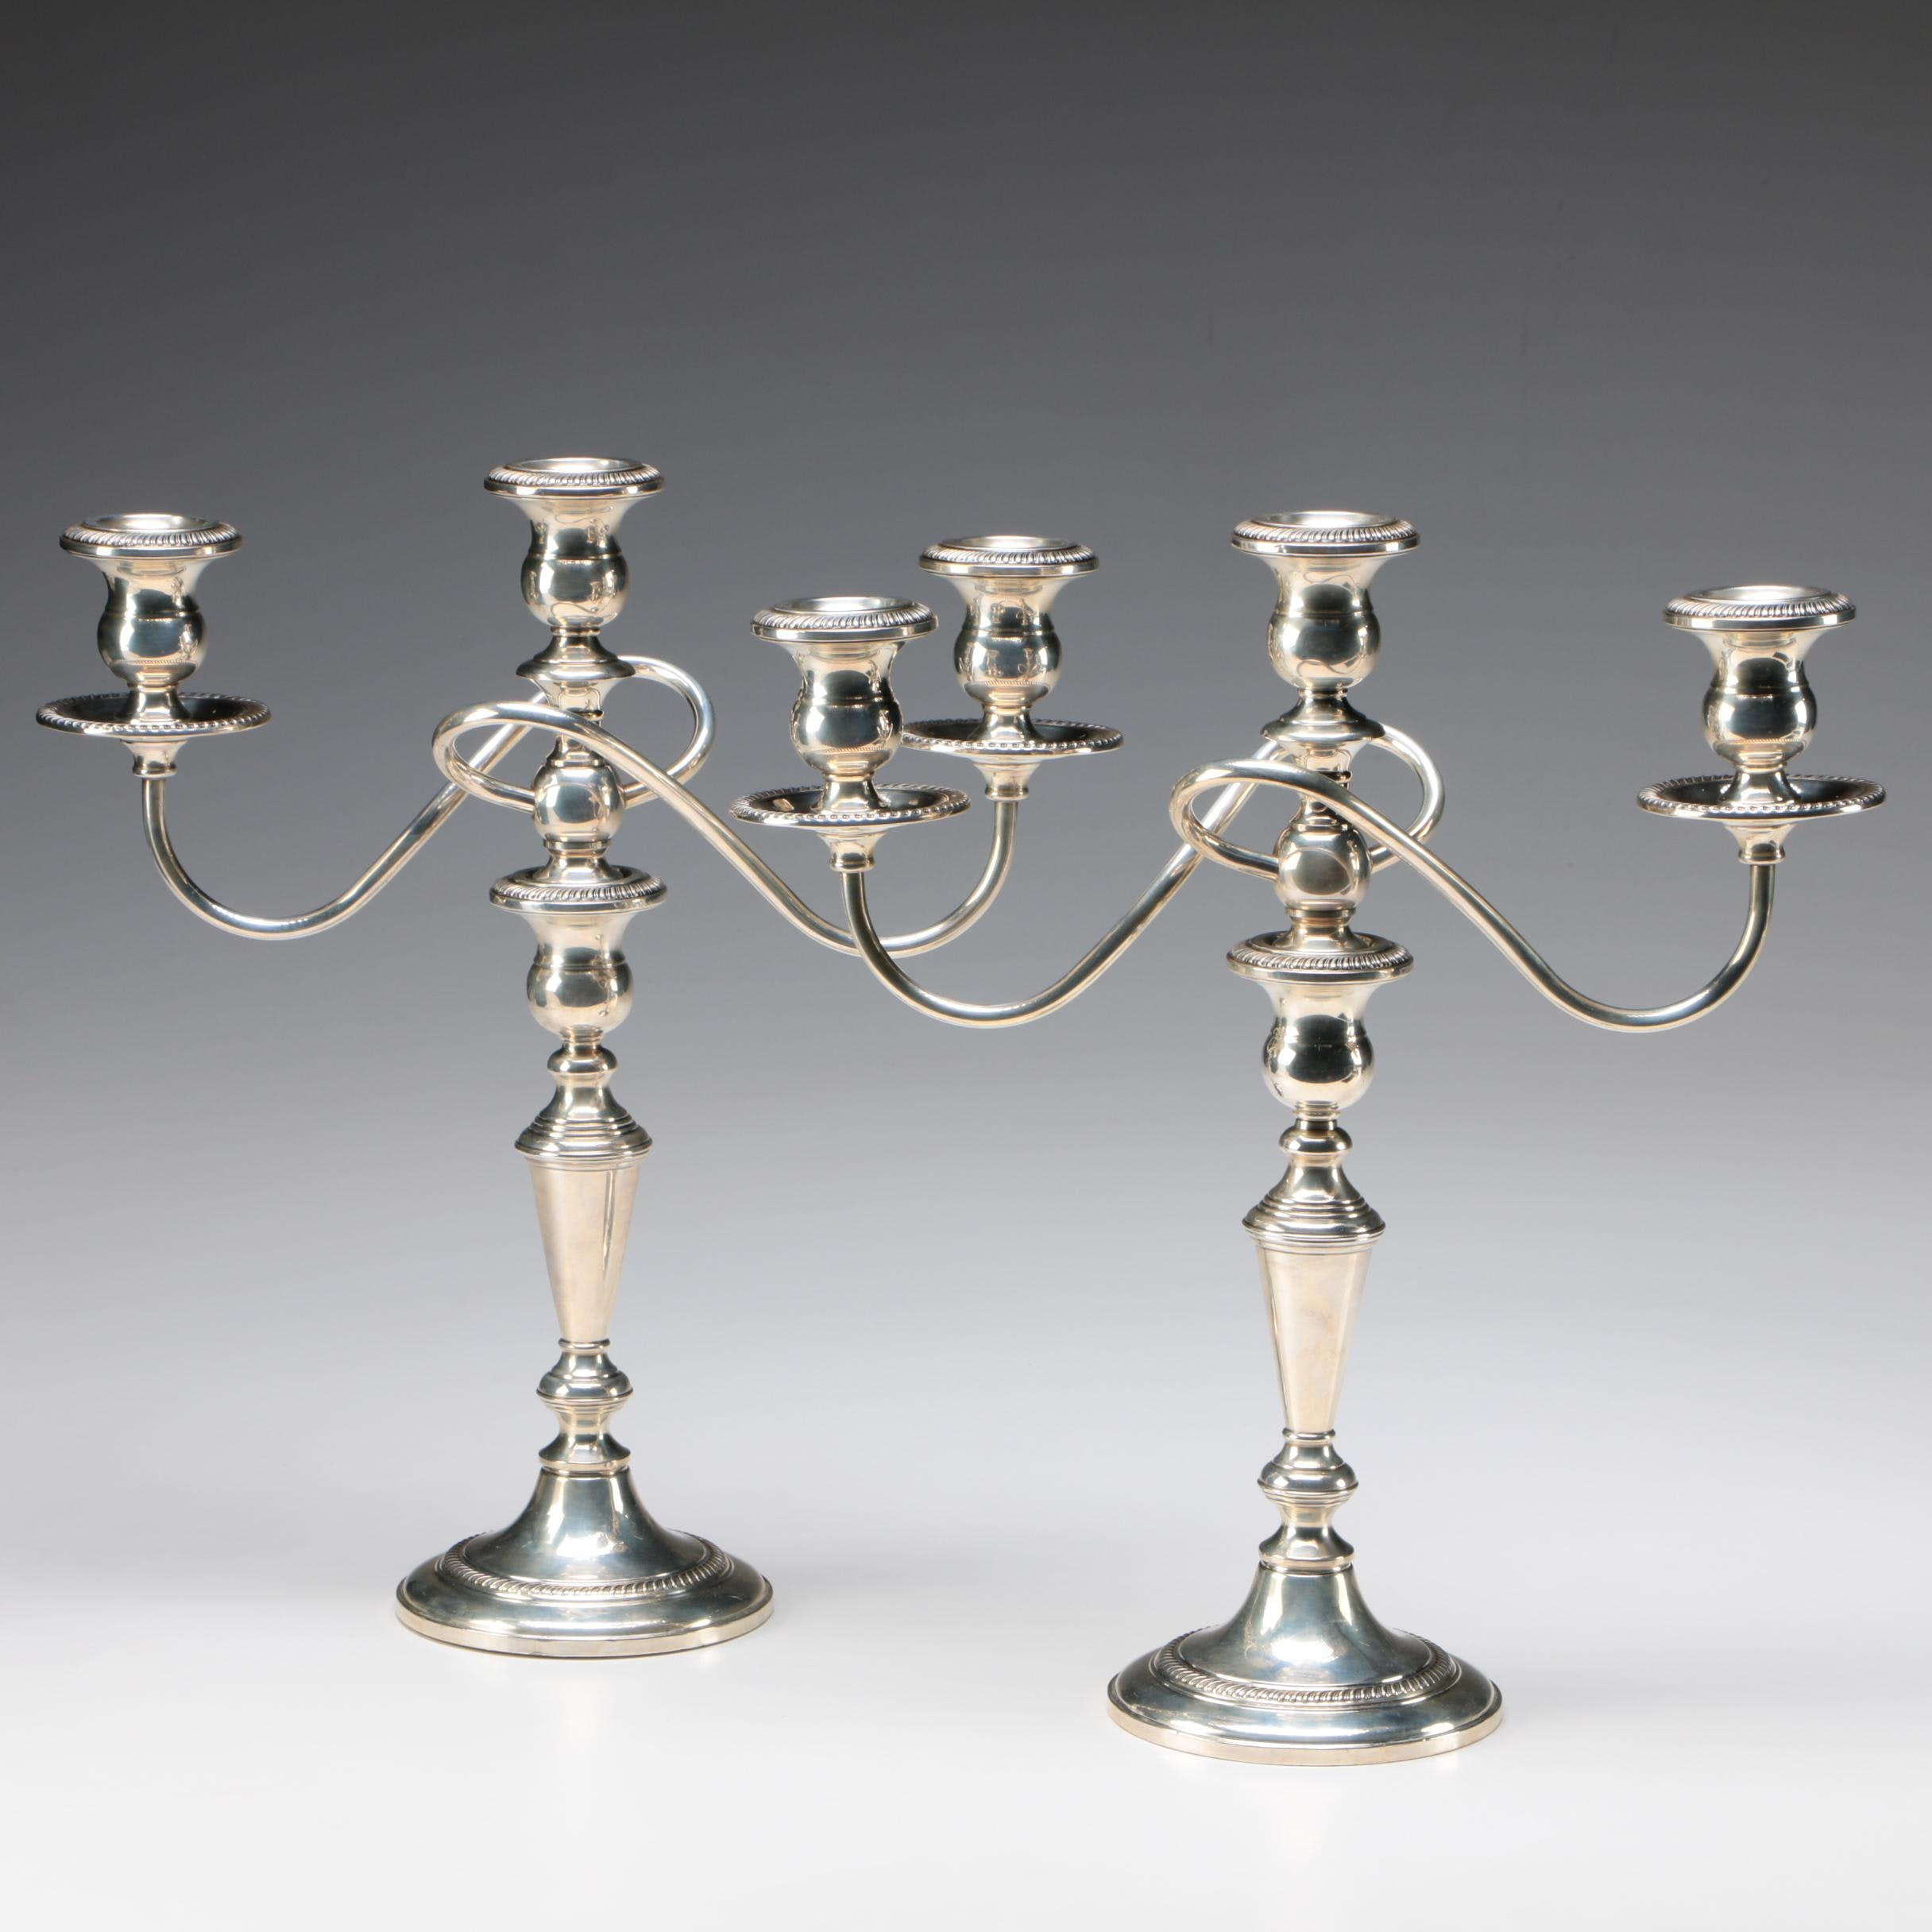 Pair of Fisher Weighted Sterling Silver Candelabra, 20th Century